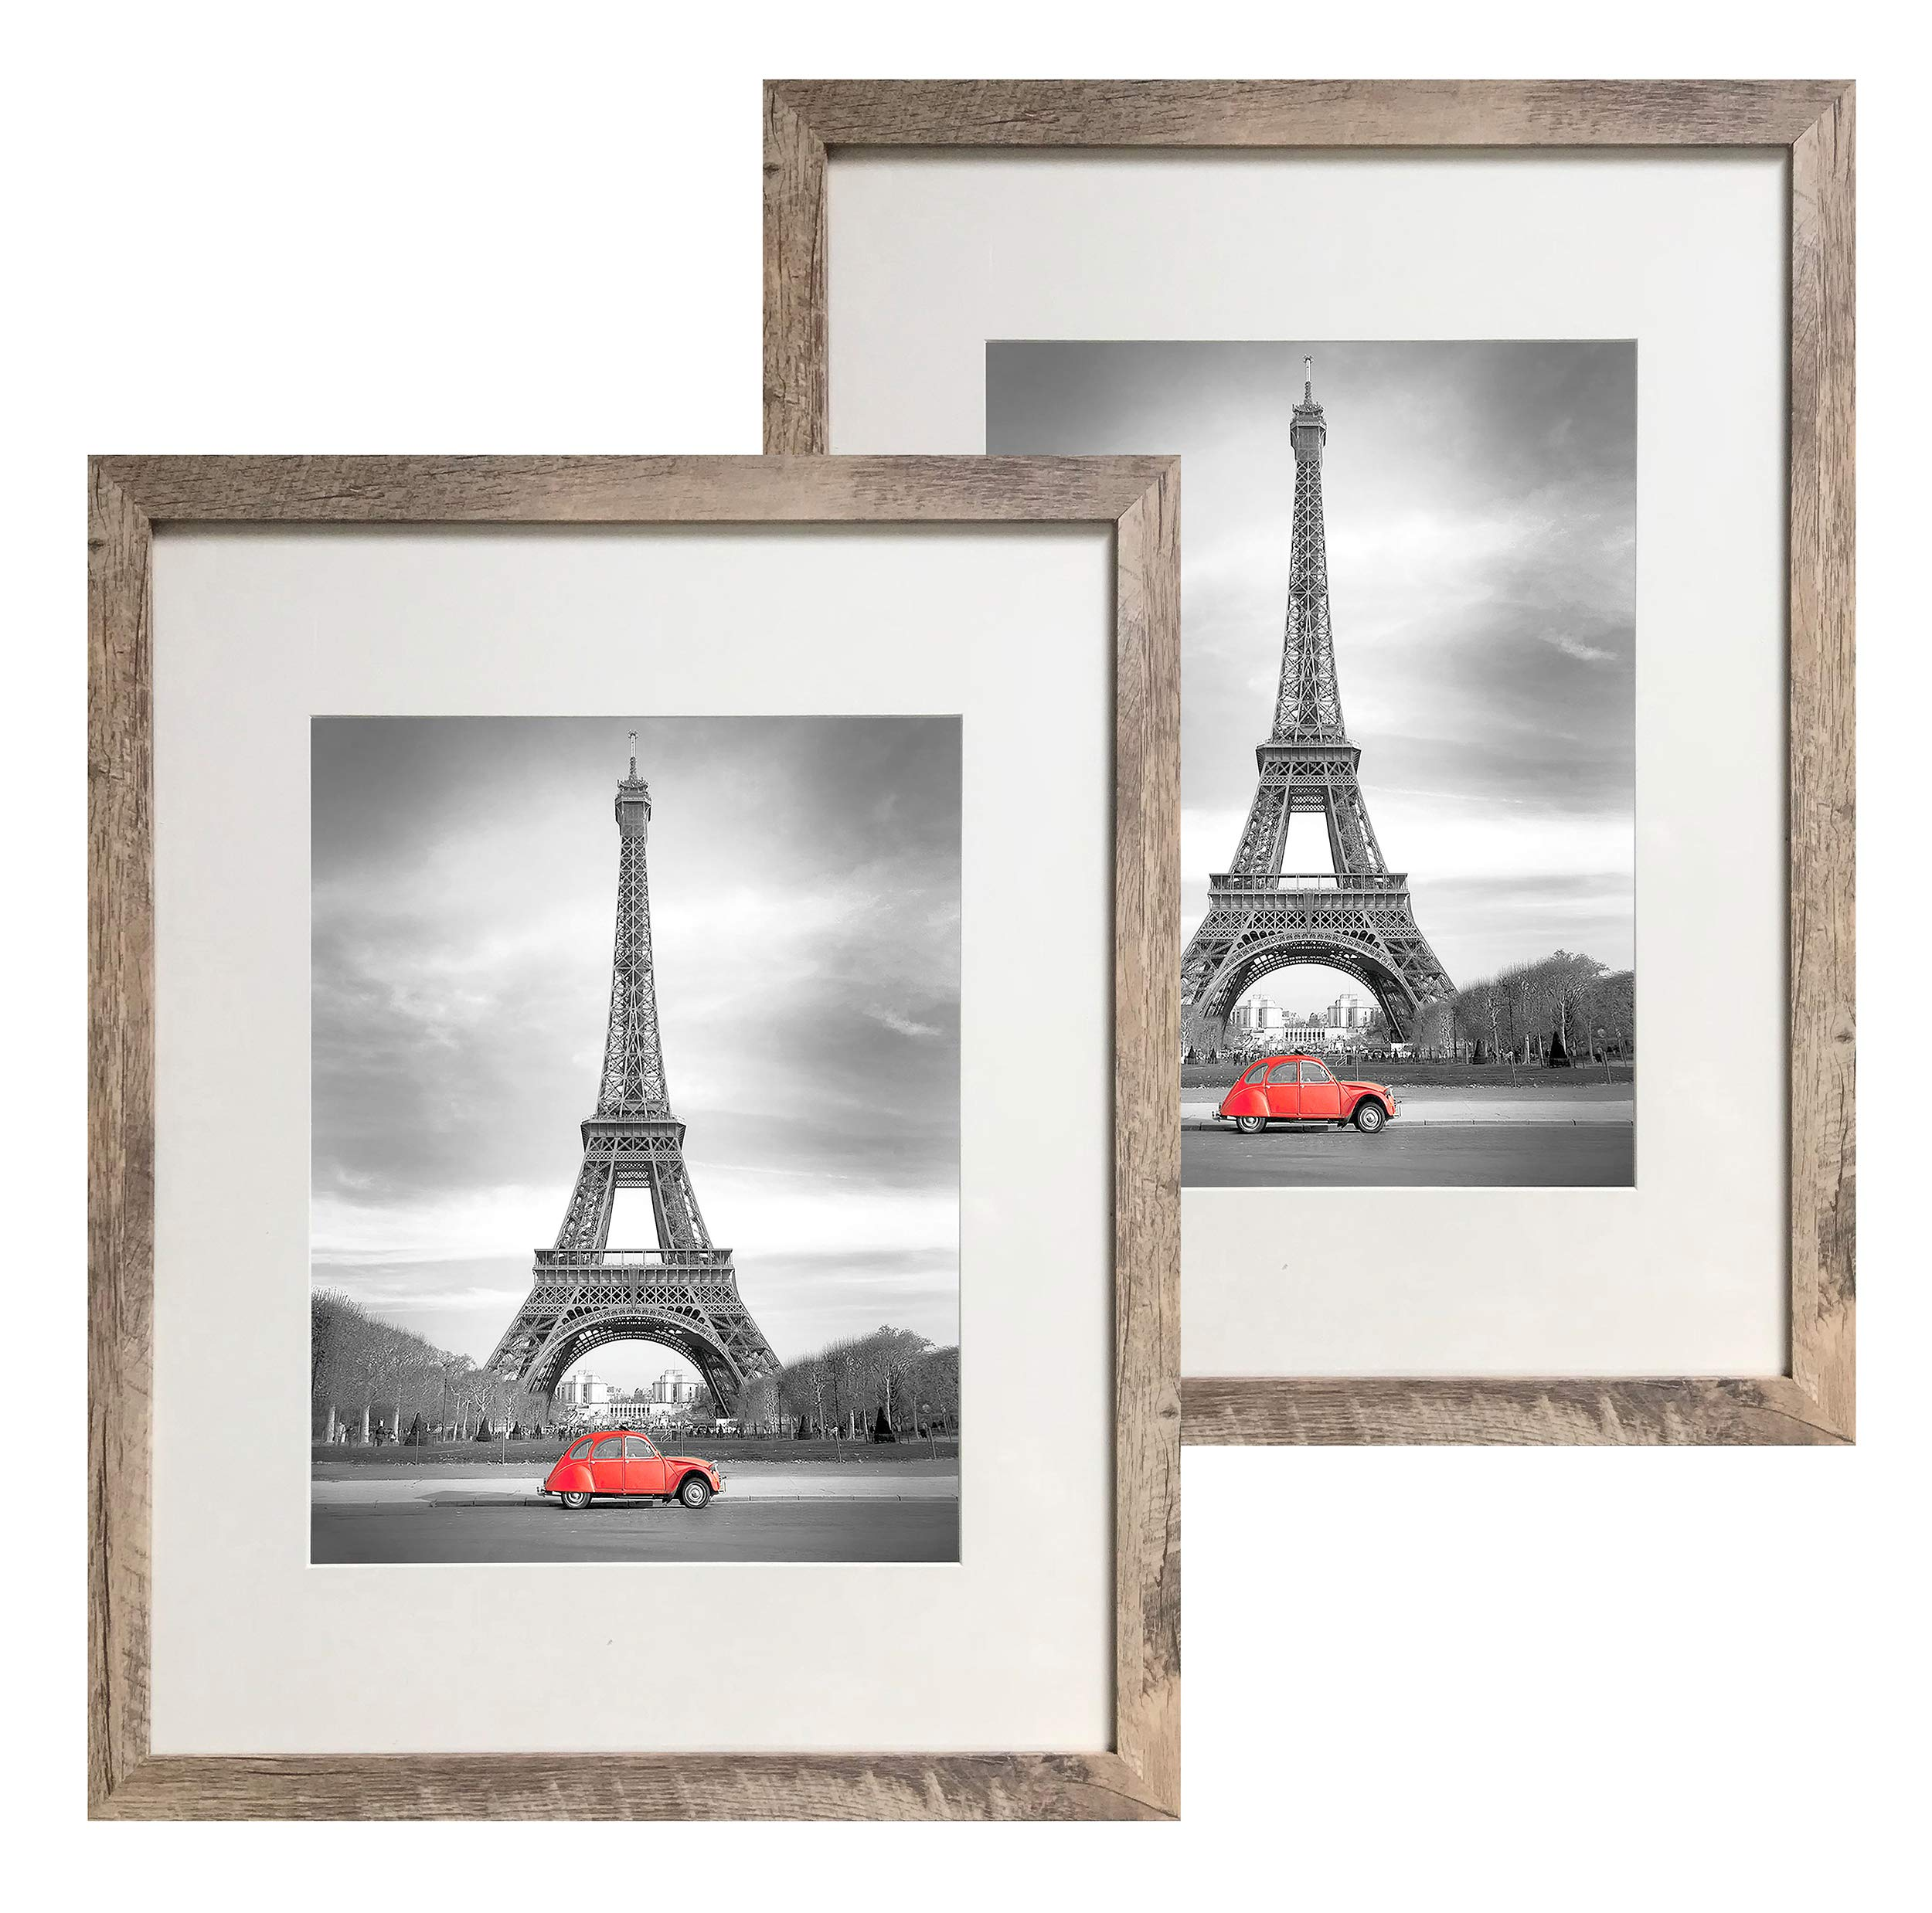 Art Emotion Rustic Oak Style Picture Frame, 2MM Reinforced Glass, Light Oak Finish 16x20 Frame for 11x14 Photos (16x20 Without MAT), Hangers Included for Horizontal or Vertical Hanging, Pack of 2 by Art Emotion